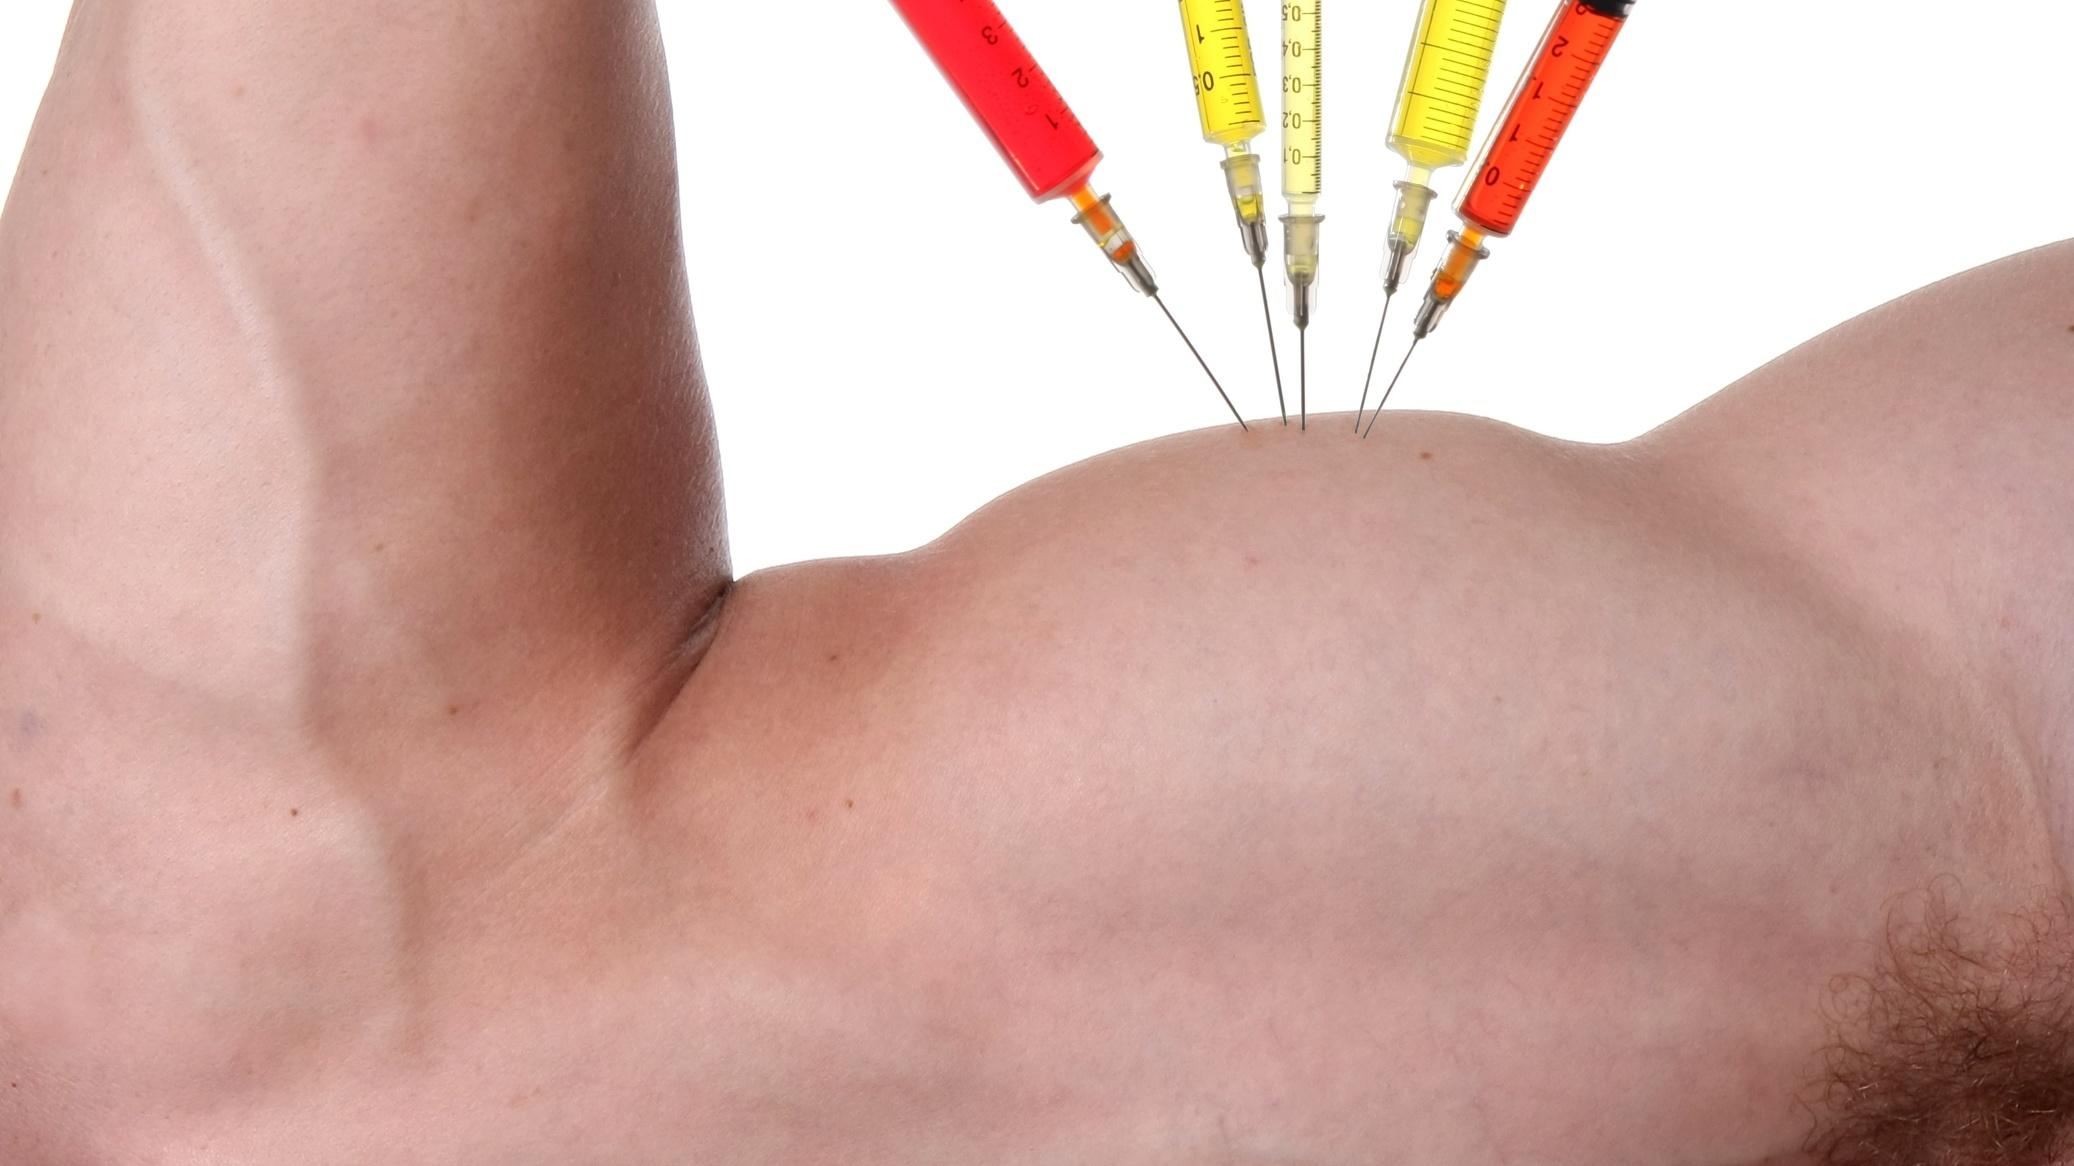 Steroids and Sedatives On The Increase Across Ireland